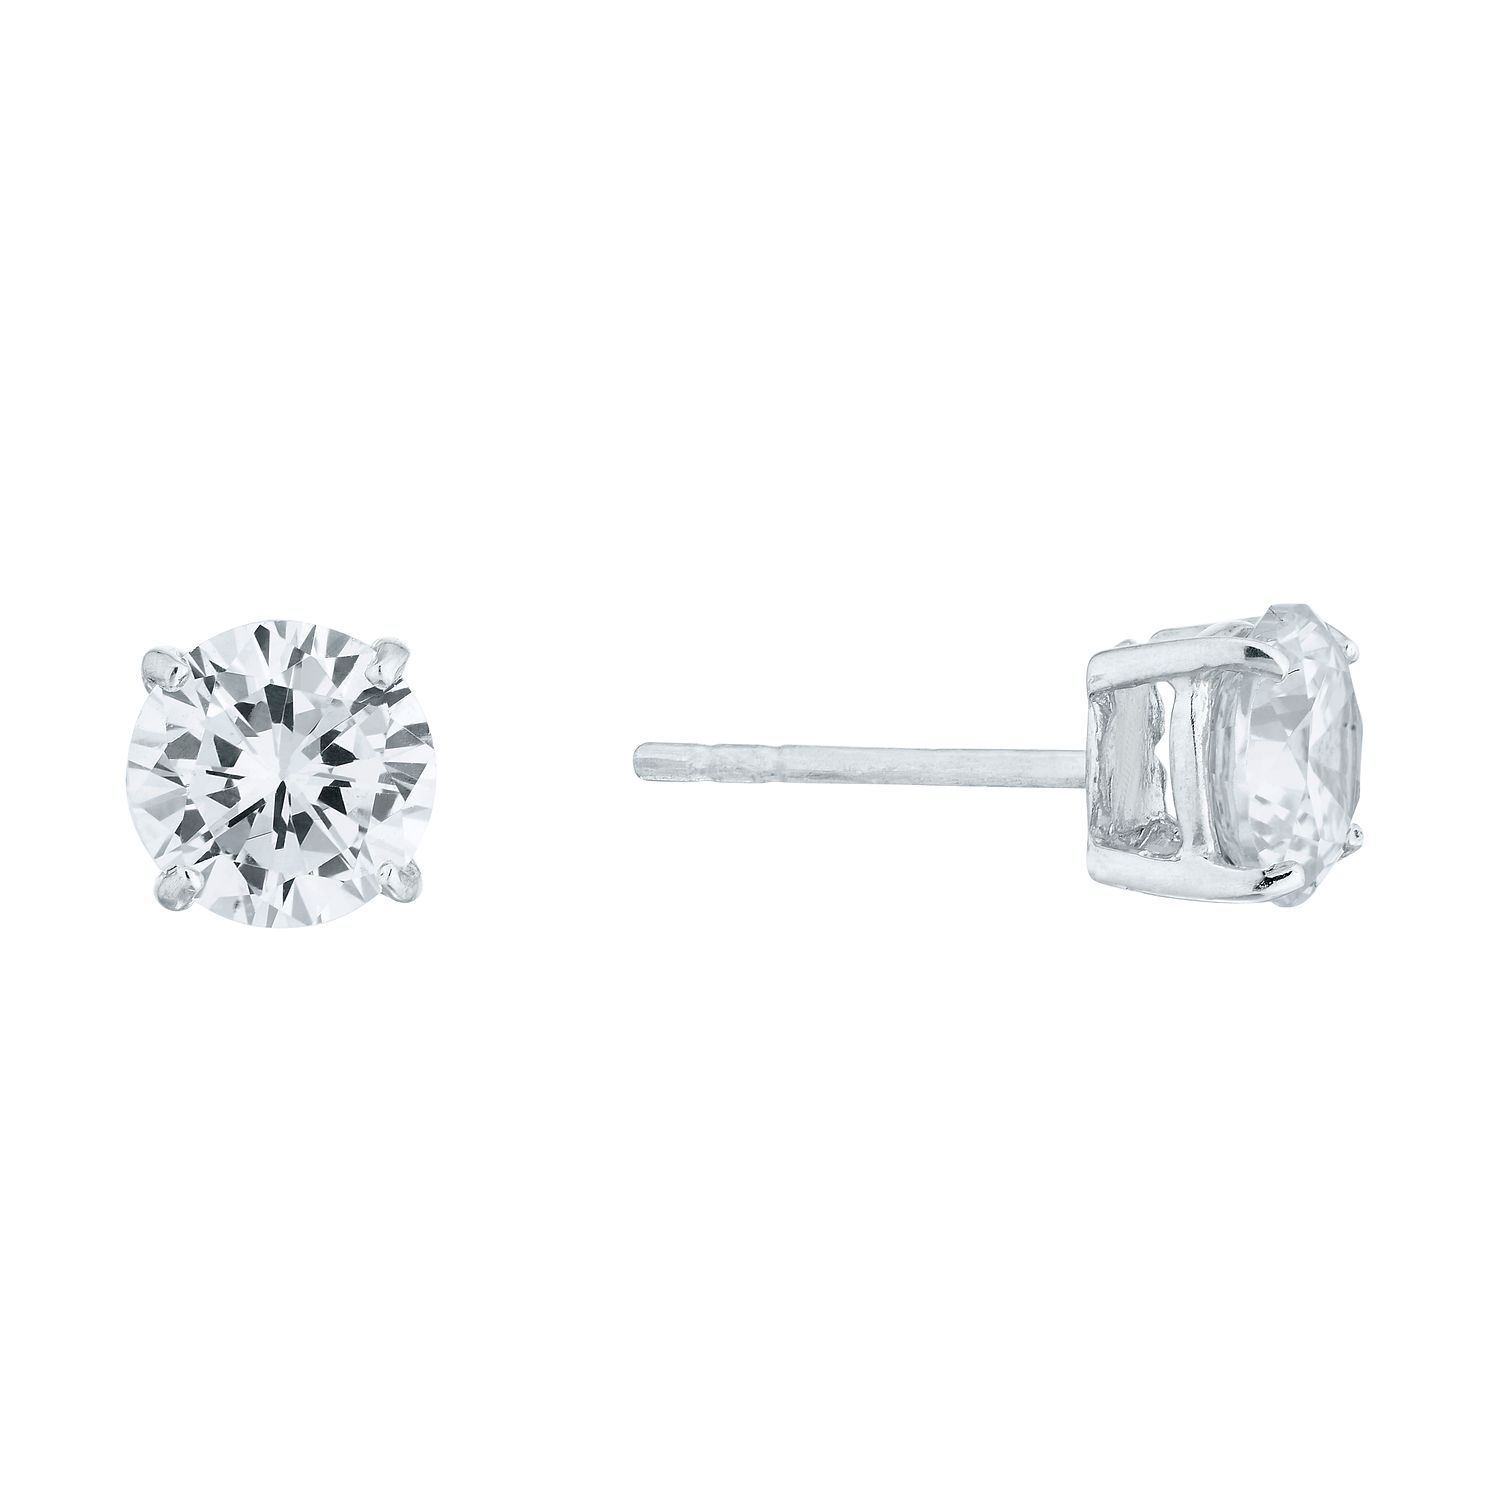 Sterling Silver Cubic Zirconia 6mm Stud Earrings - Product number 3909743